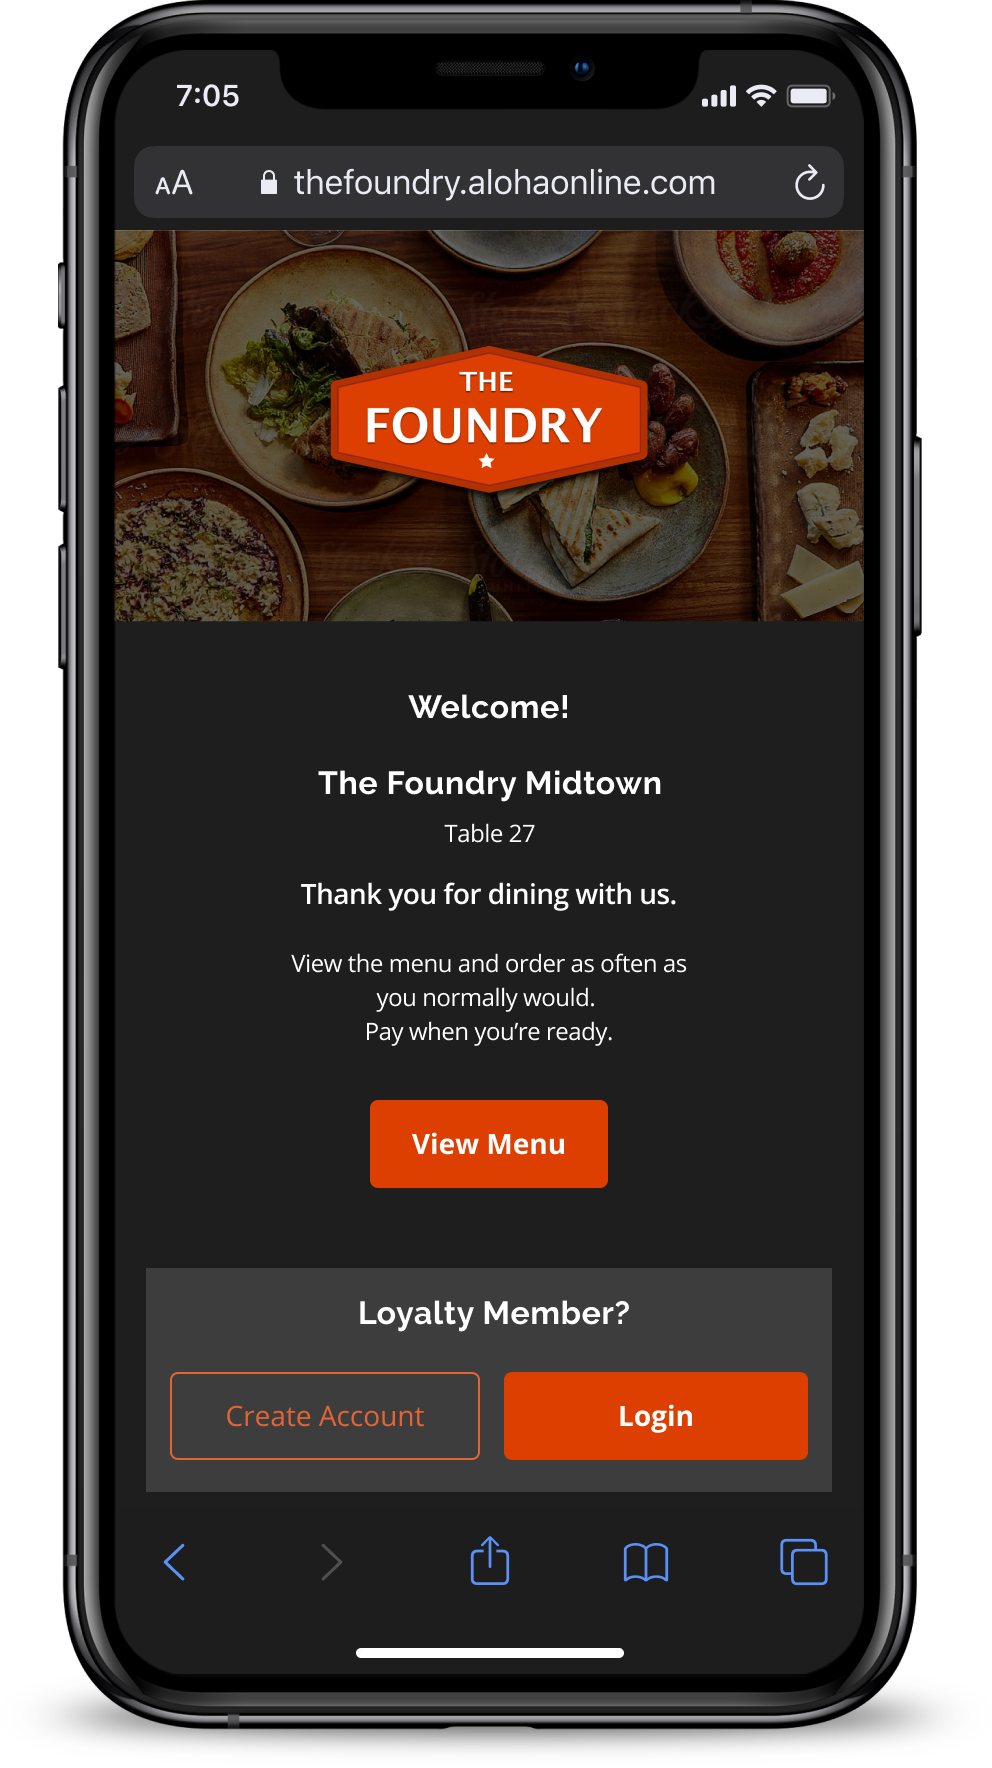 Give guests a safe, easy way to order and pay while dining-in.